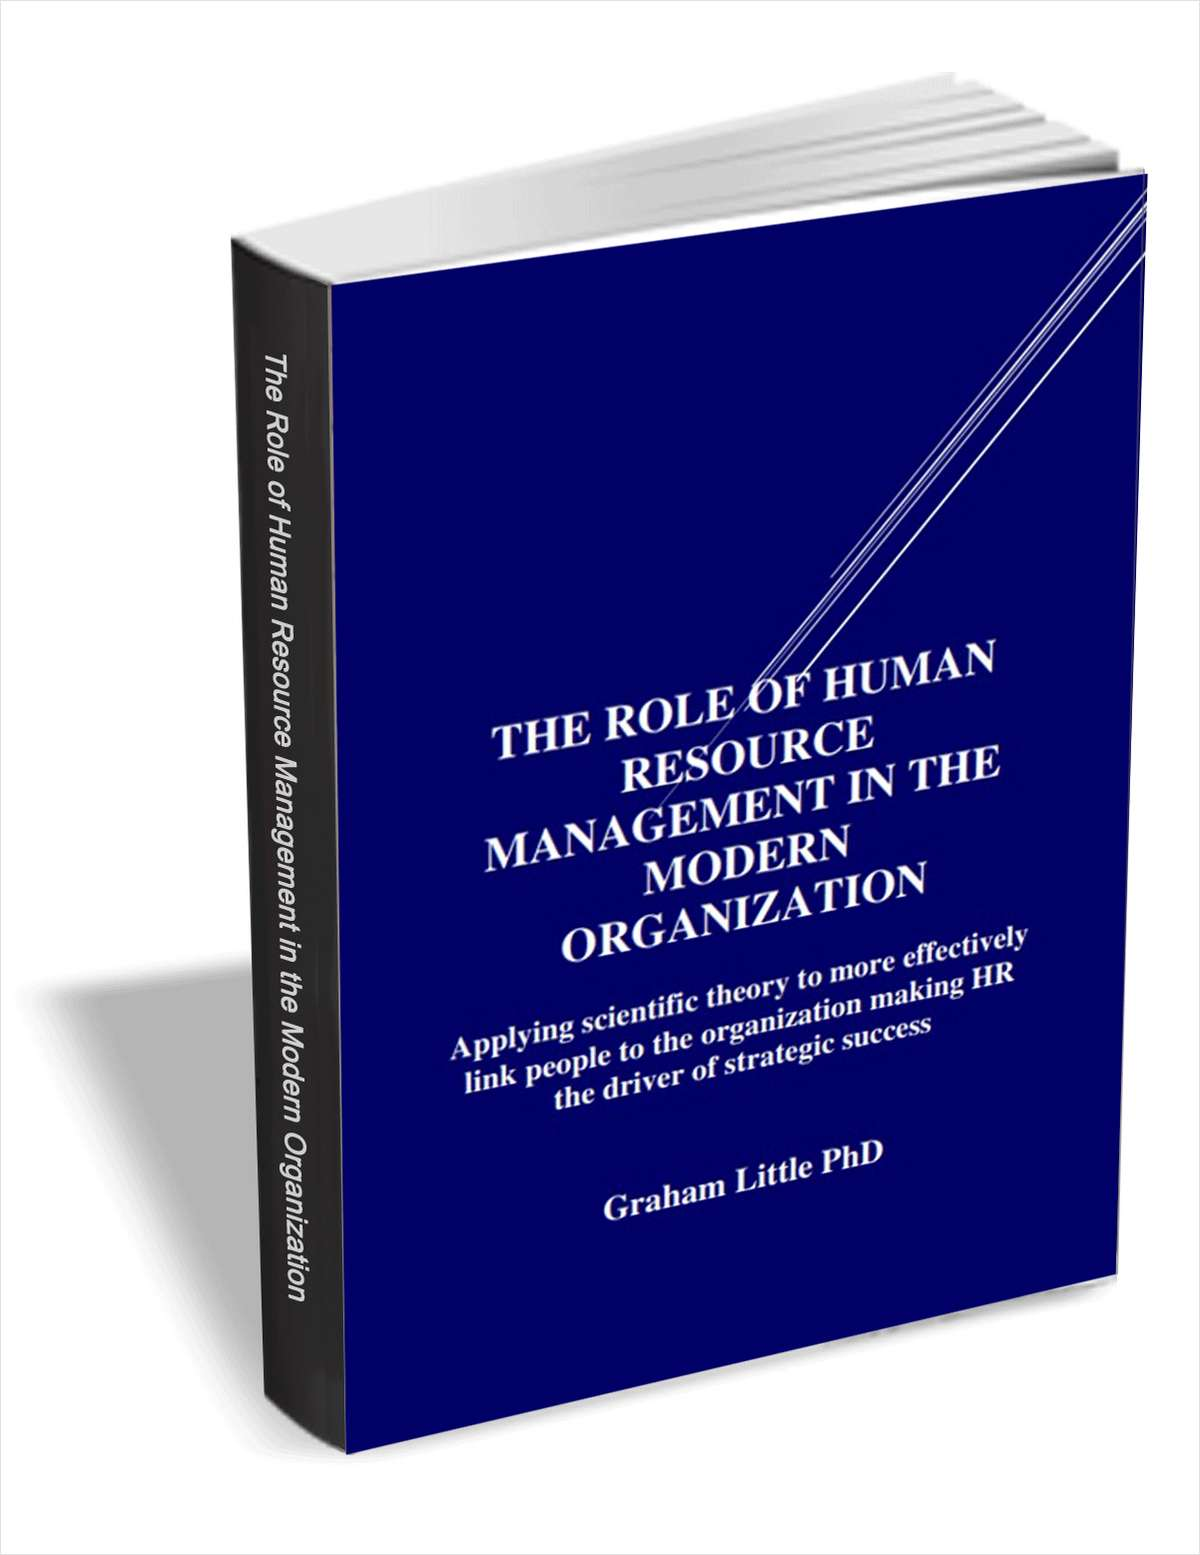 The Role of Human Resource Management in the Modern Organization